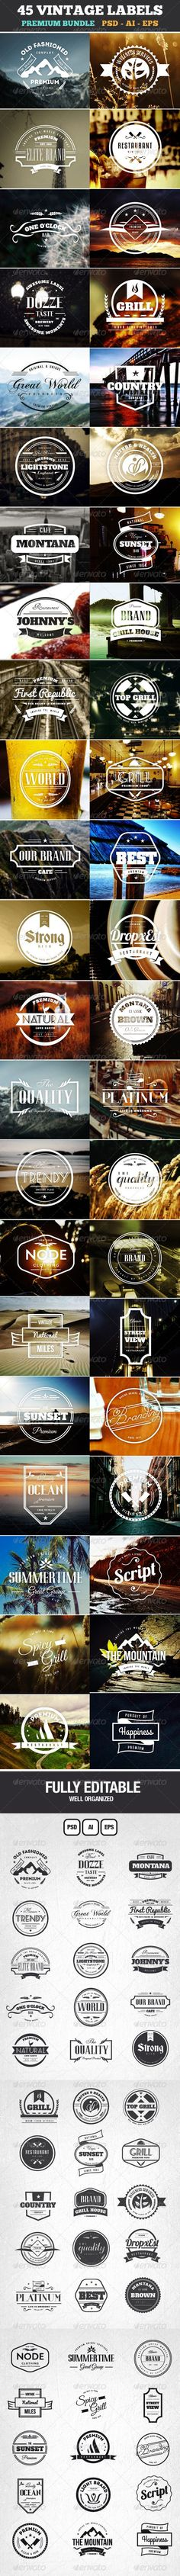 45 Retro Vintage Labels and Badges that you can use on Logos with emblem style, on beer labels, restaurants, coffee shops, bar and other places. Also you can use them on modern labels with a touch of Vintage style for your Website, Business, Stickers, T-shirt, Retro Labels and more.: